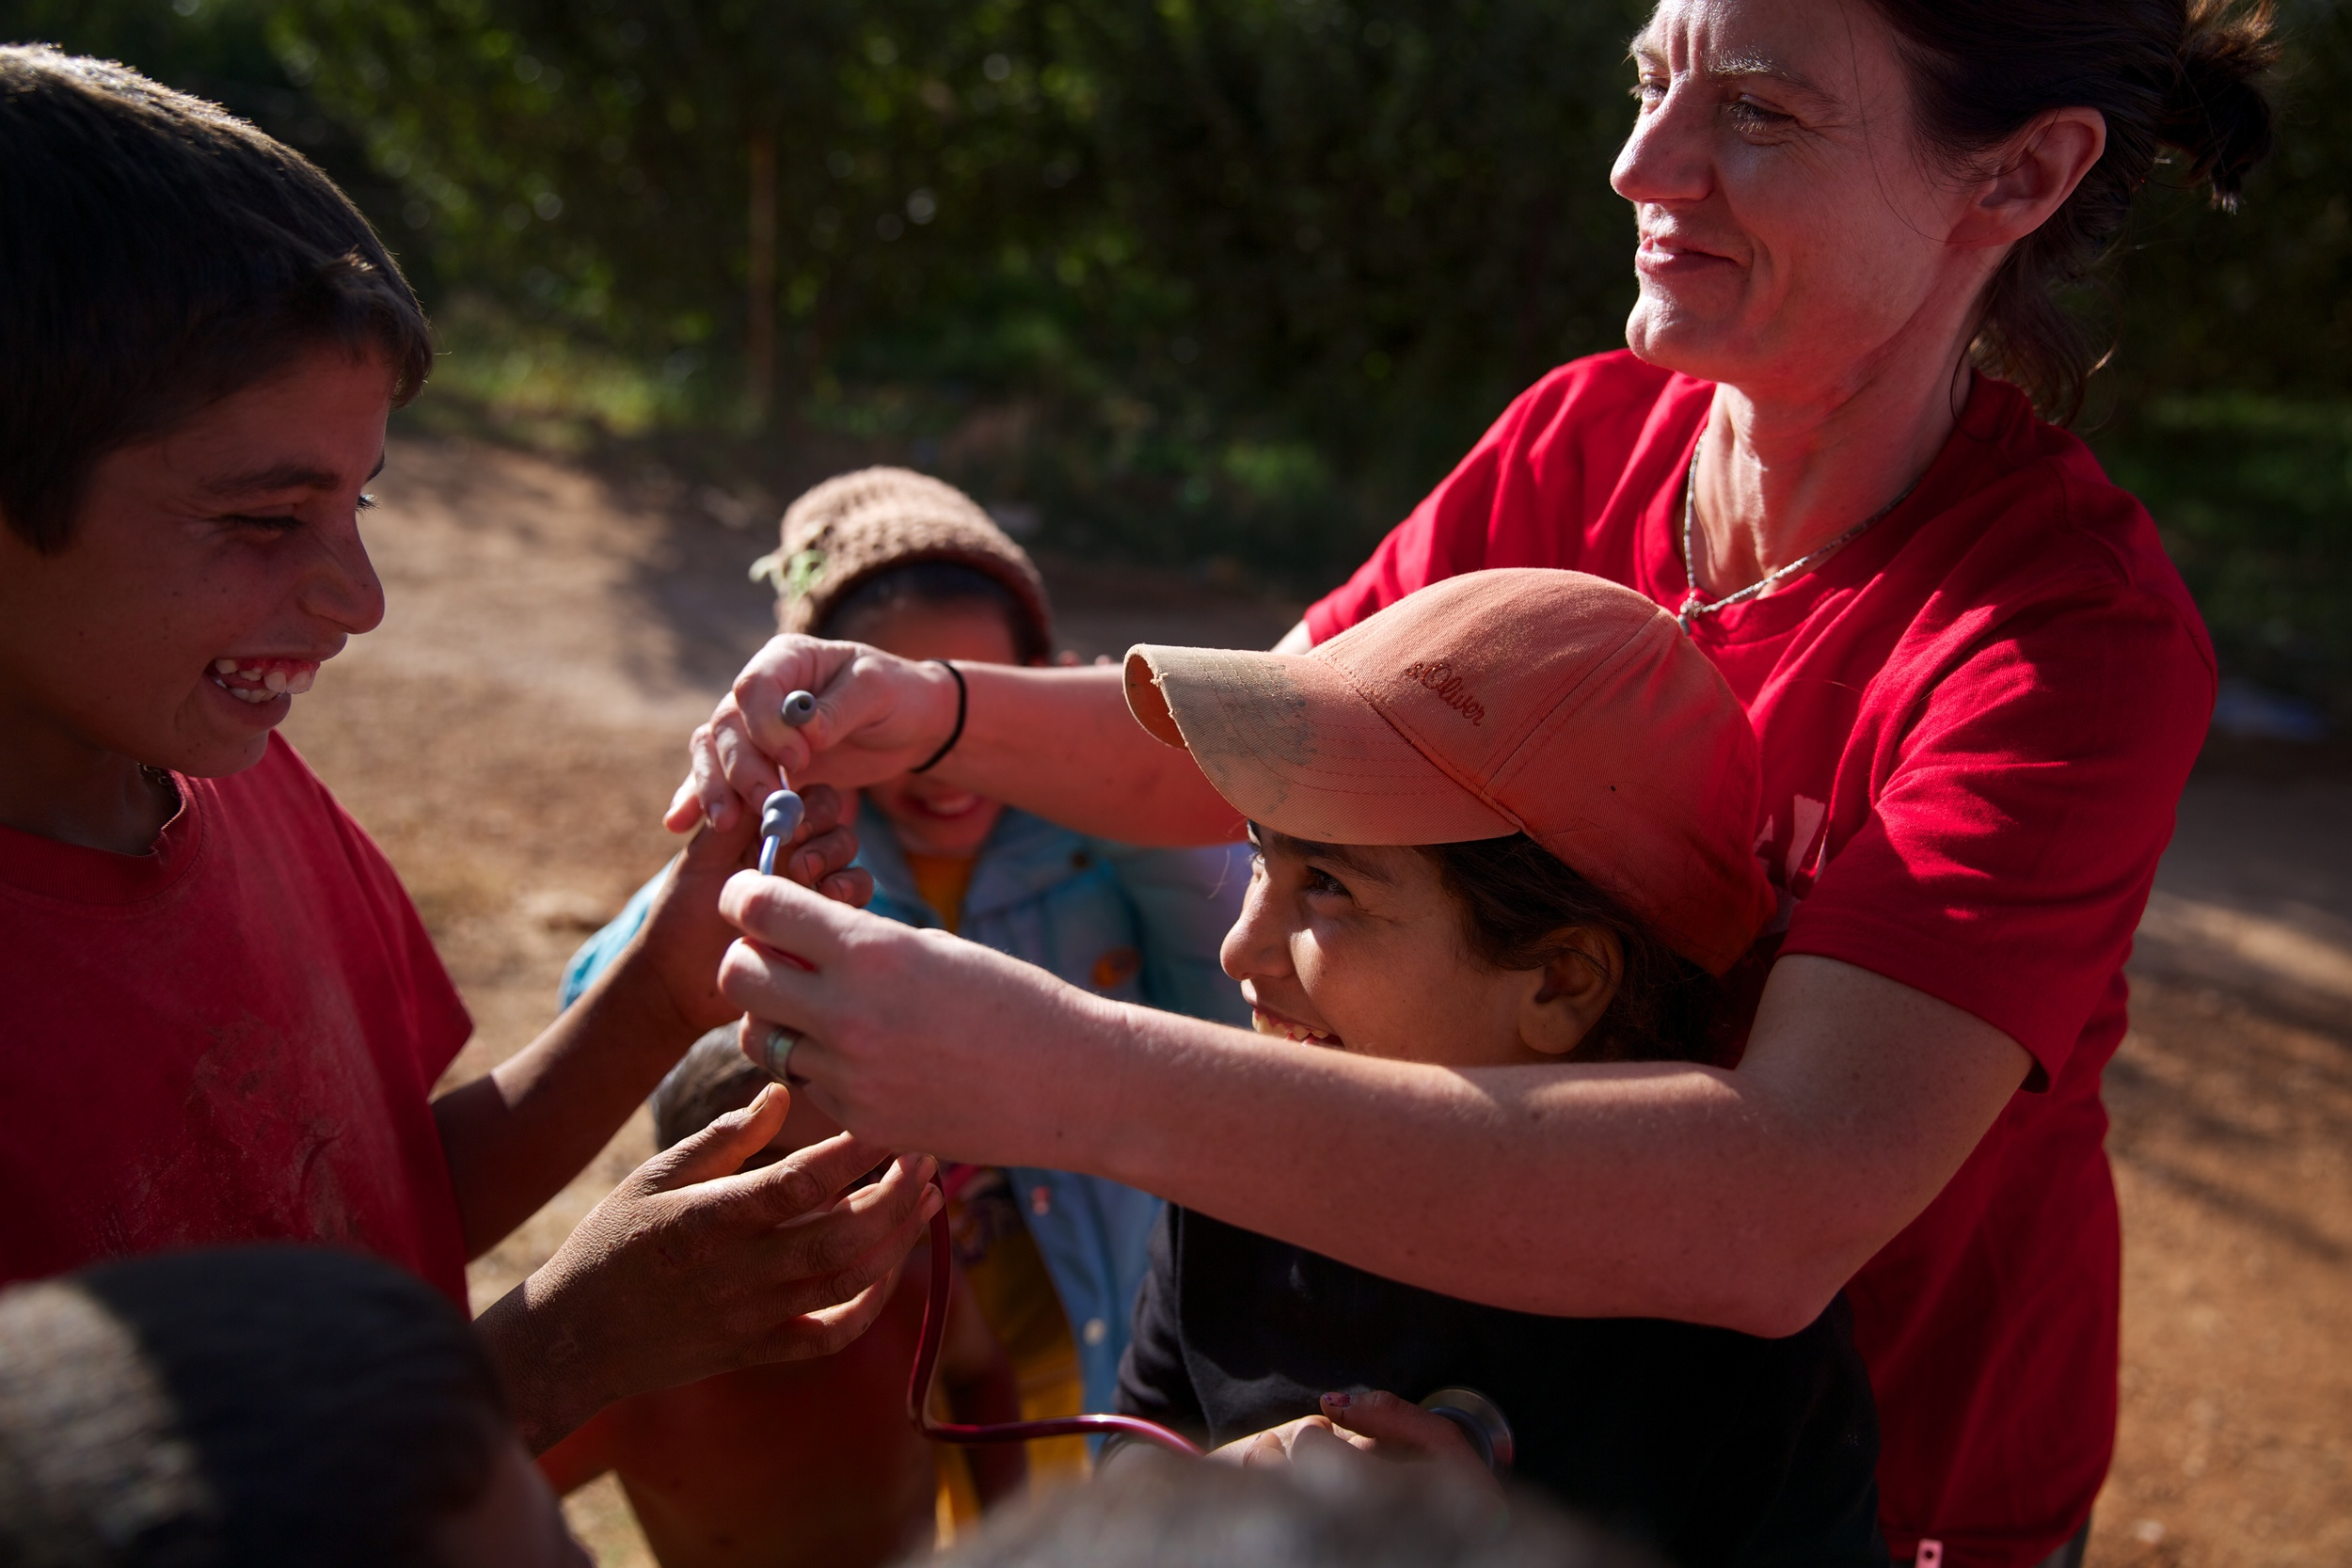 Martina Ford, a nurse from Portland, Oregon, shares her medical equipment with children at a refugee camp in Lebanon.